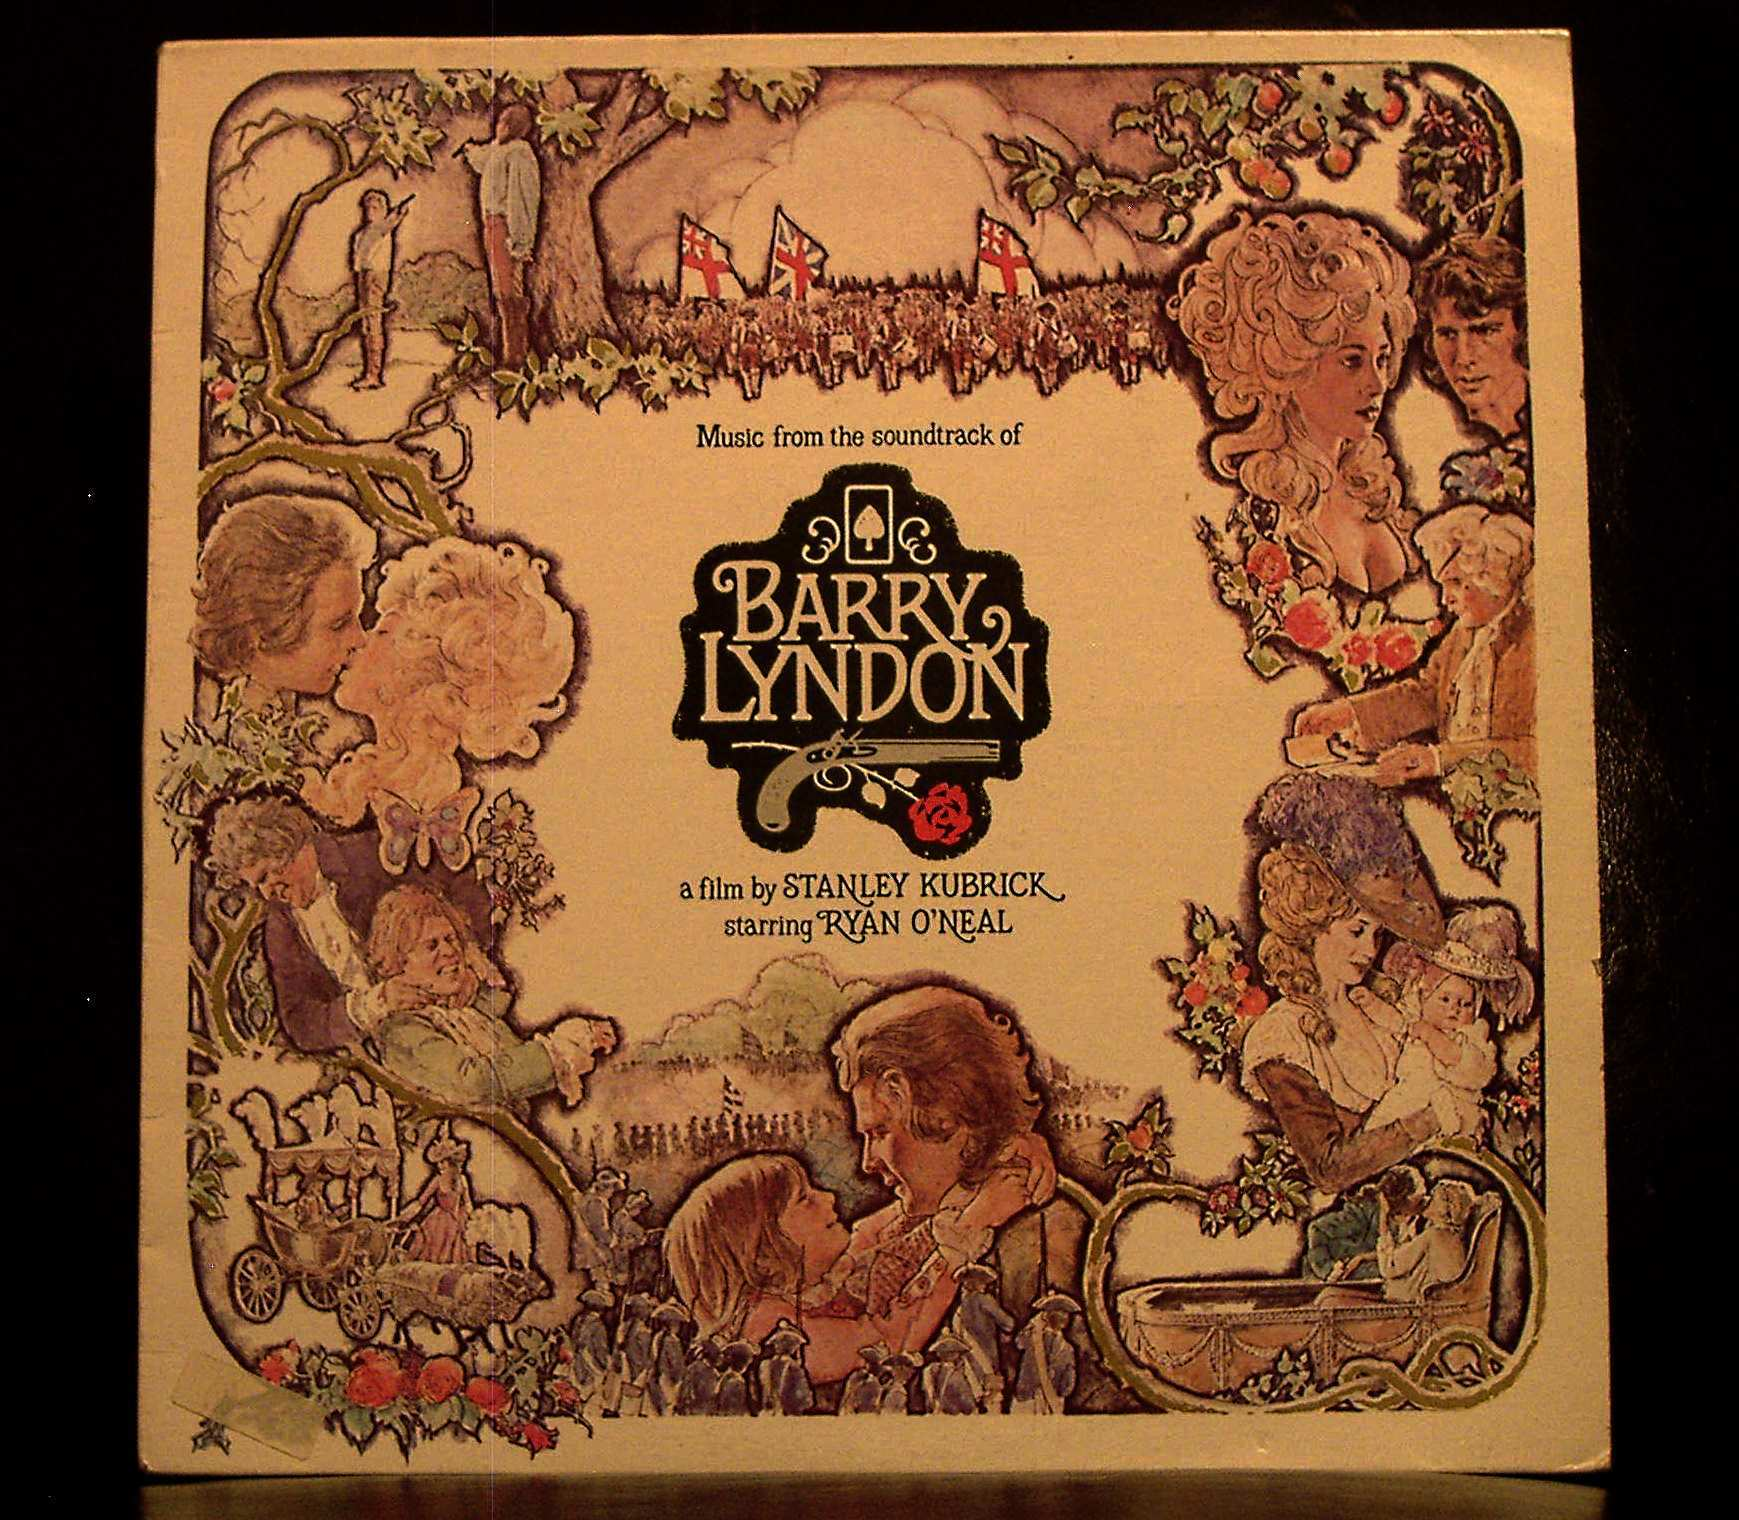 Barry Lyndon album